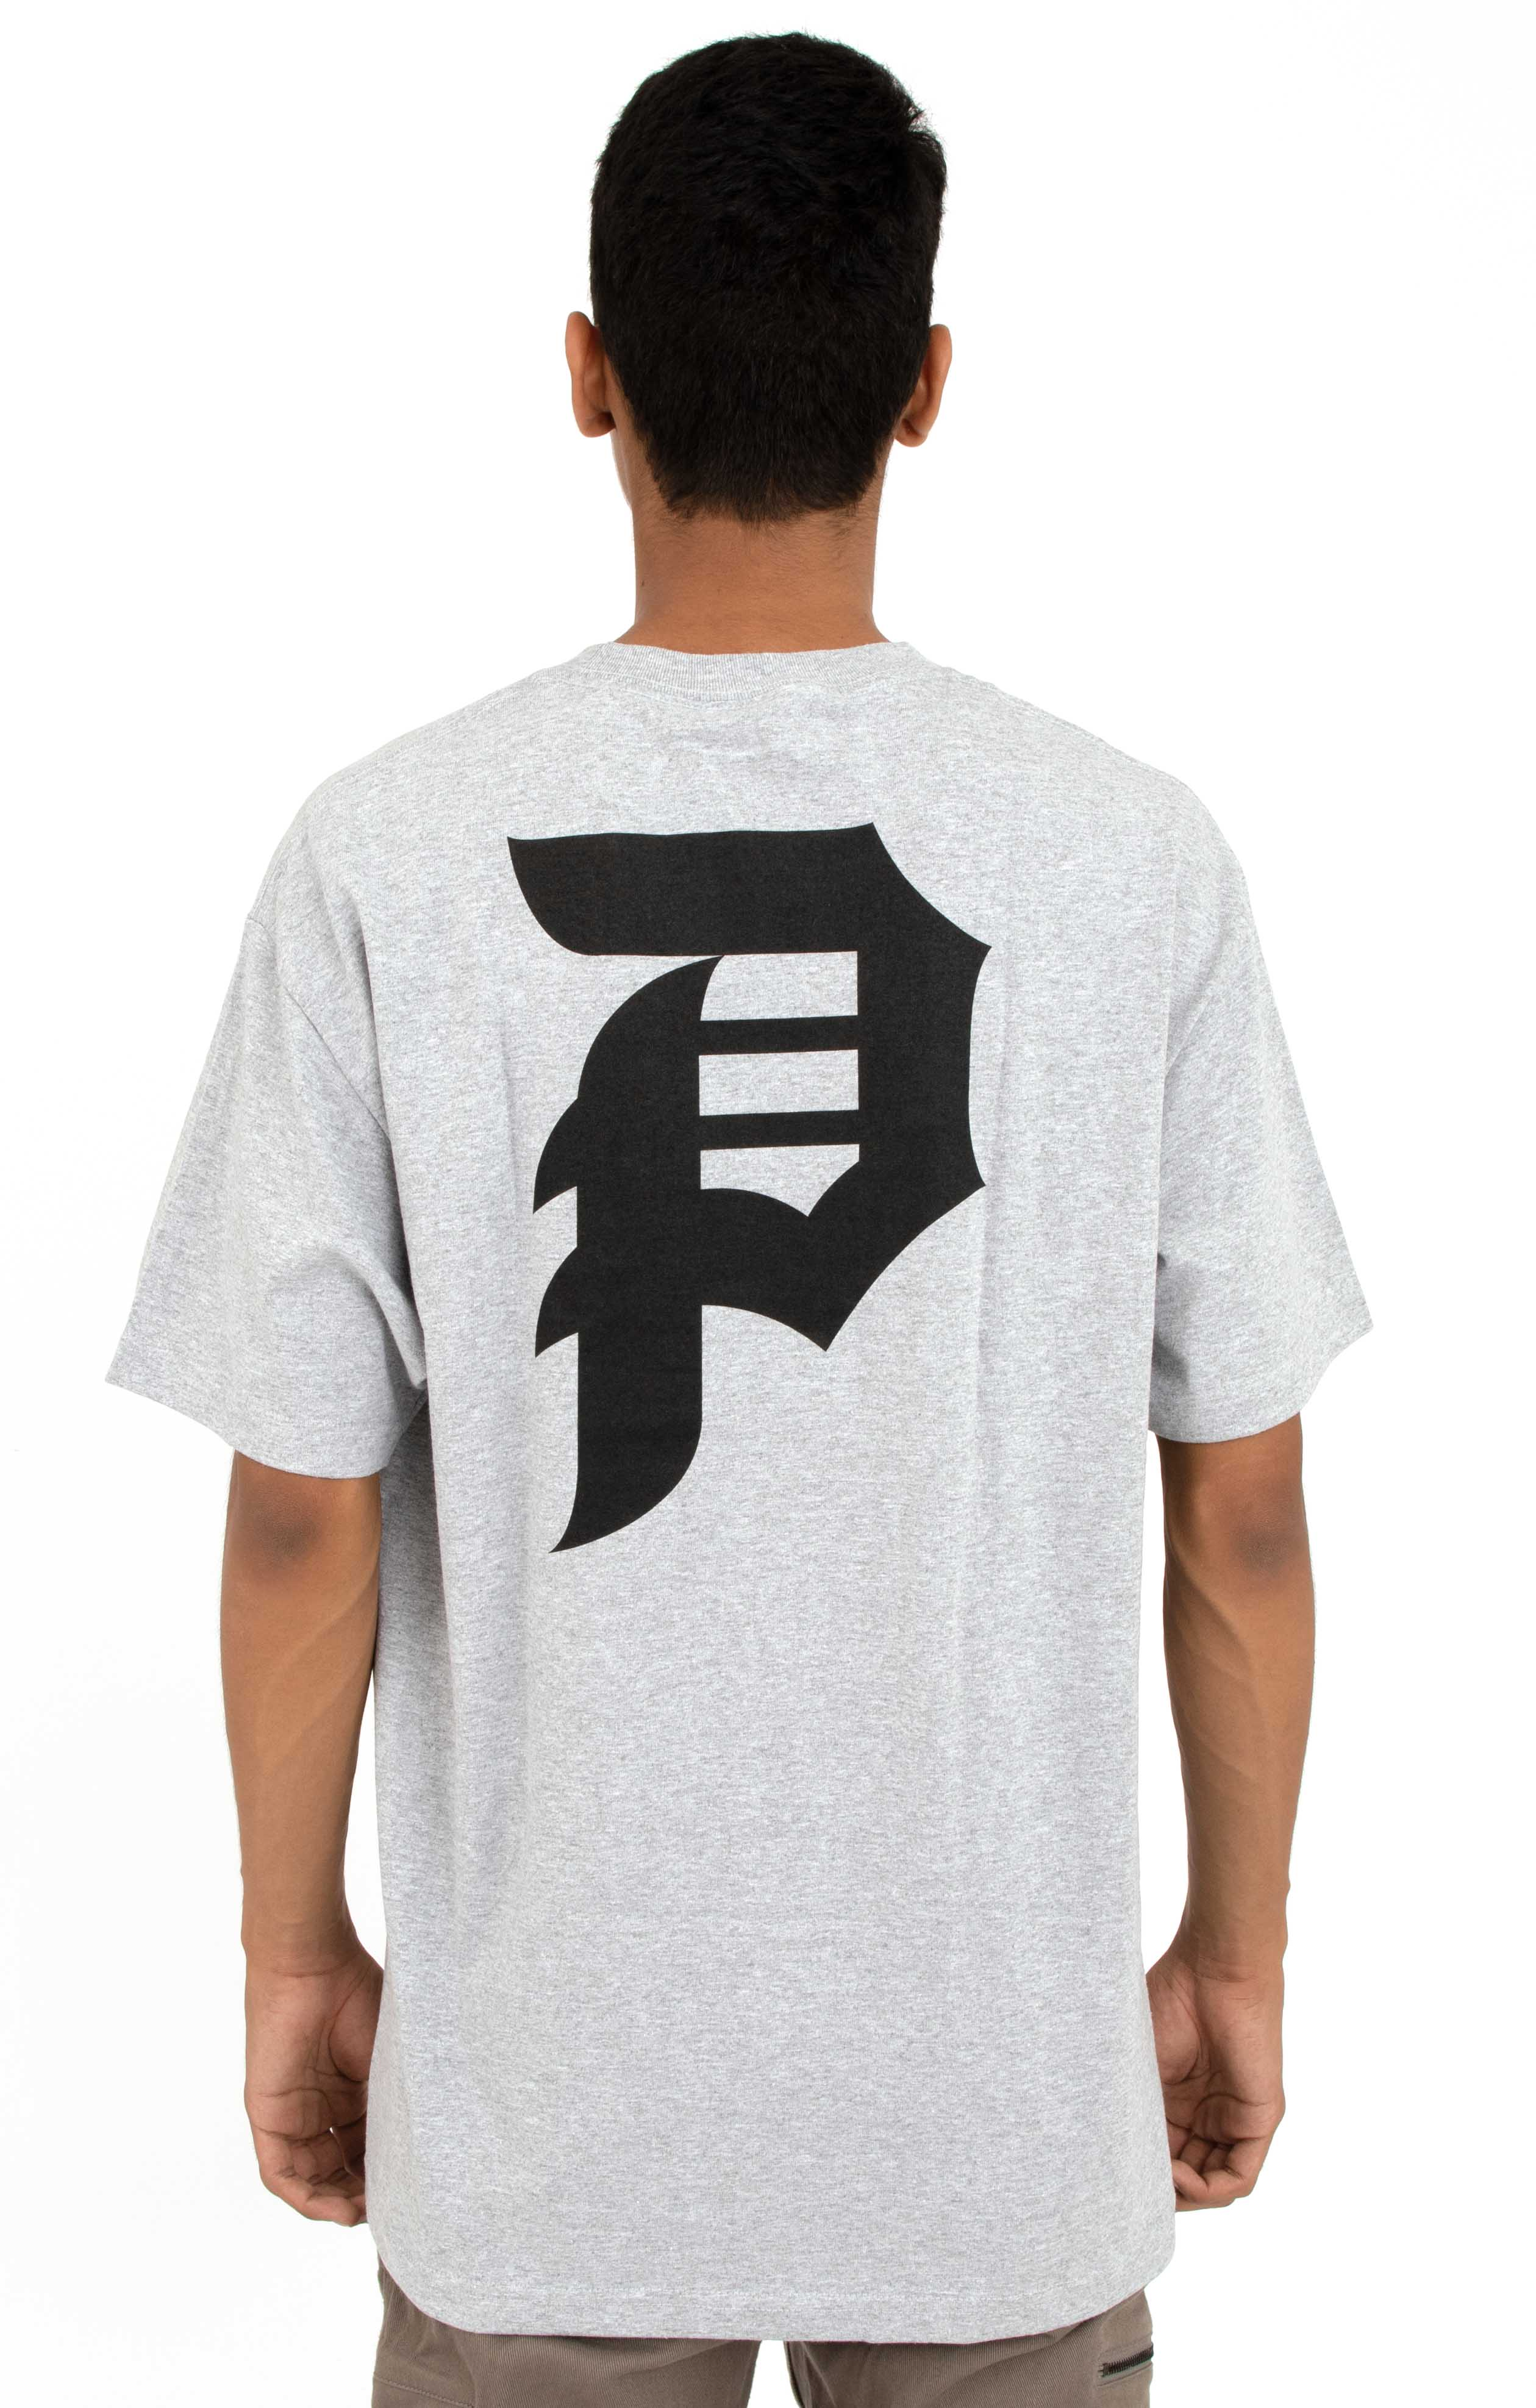 Dirty P Core T-Shirt - Grey/Black